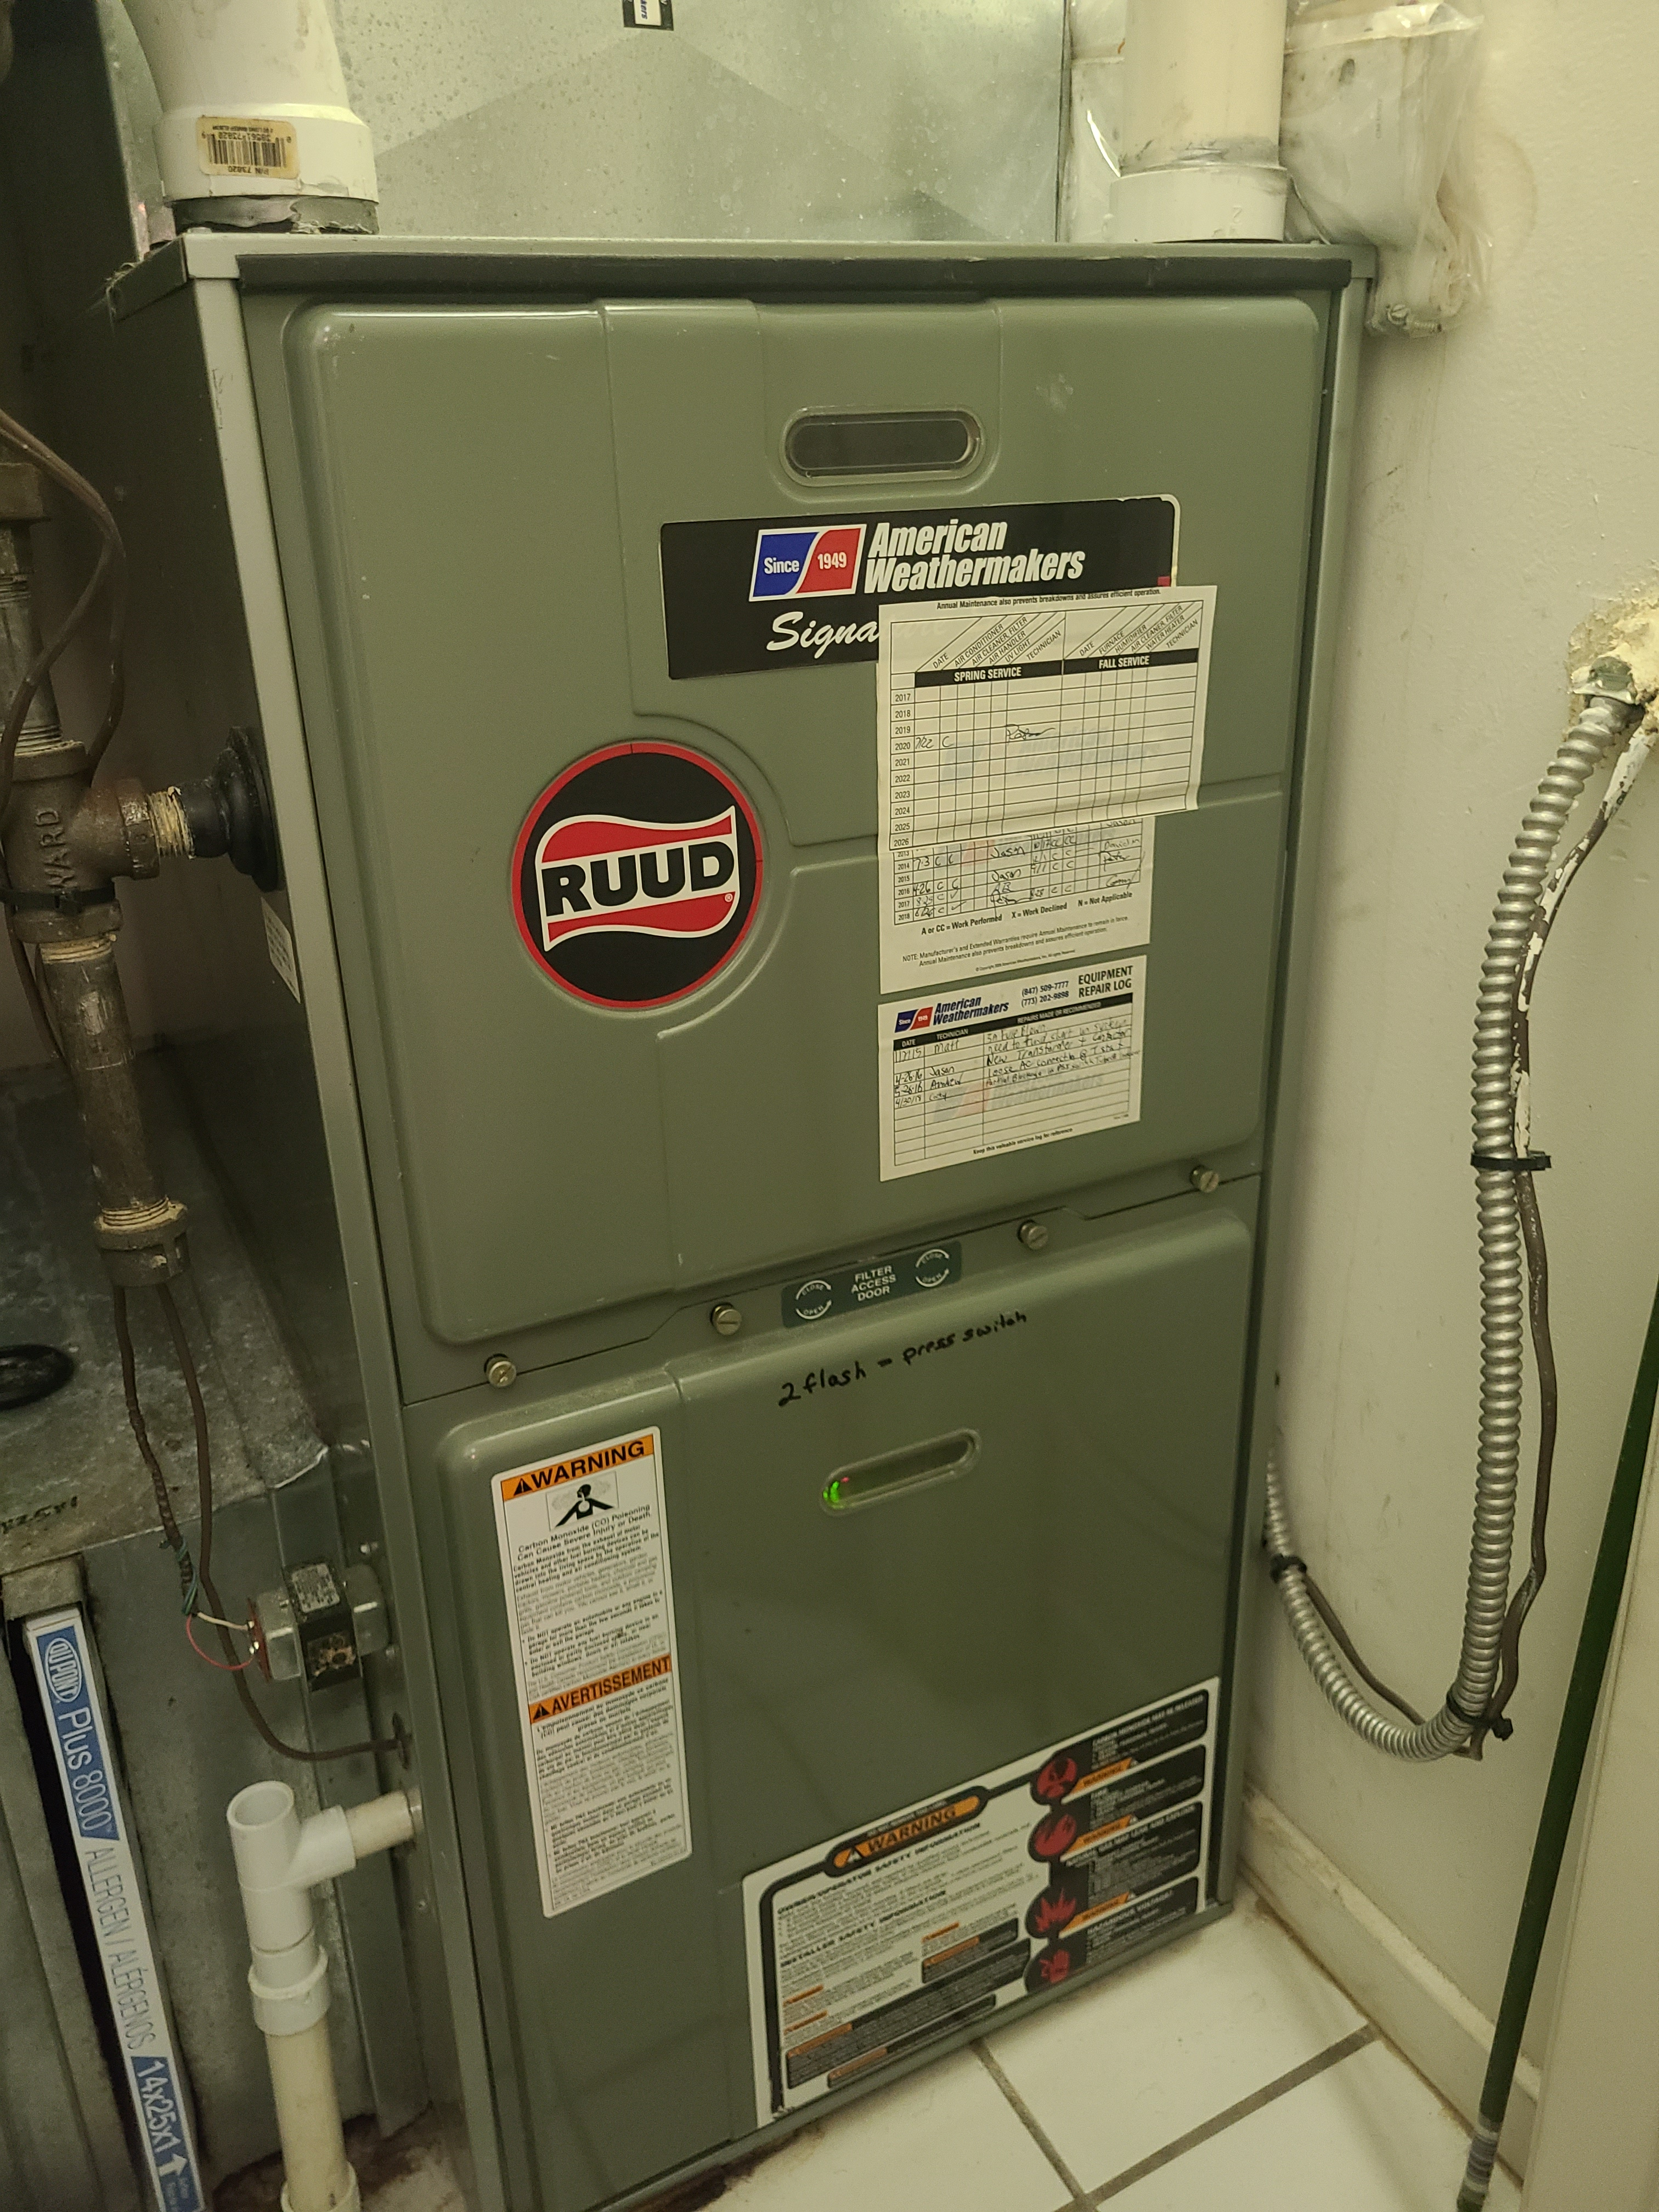 Ruud air conditioning no cooling issue diagnosed and repaired.